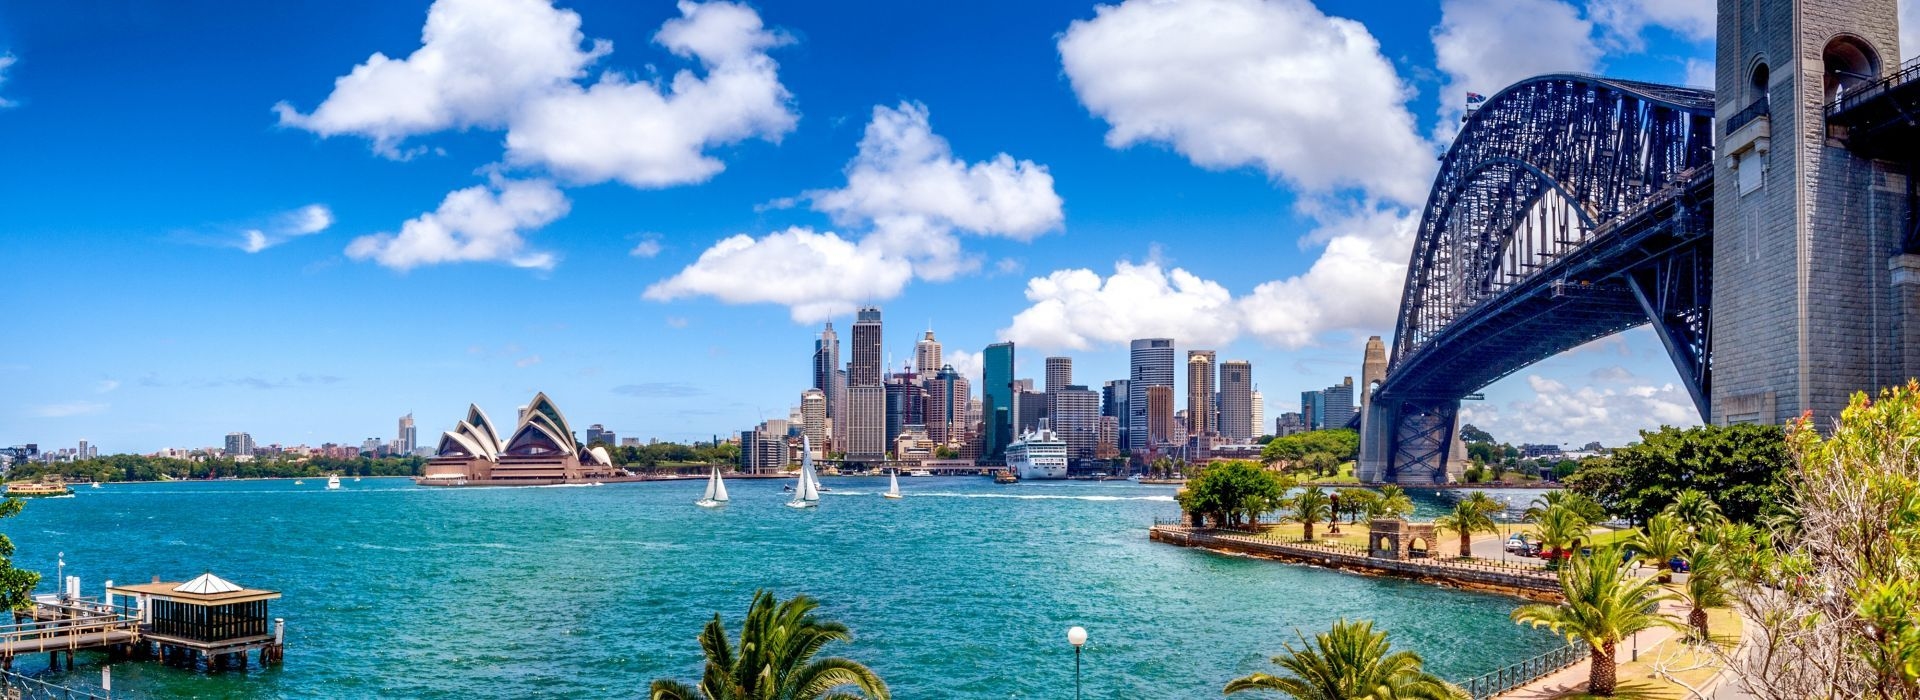 Sightseeing, attractions, culture and history Tours in Adelaide and South Australia